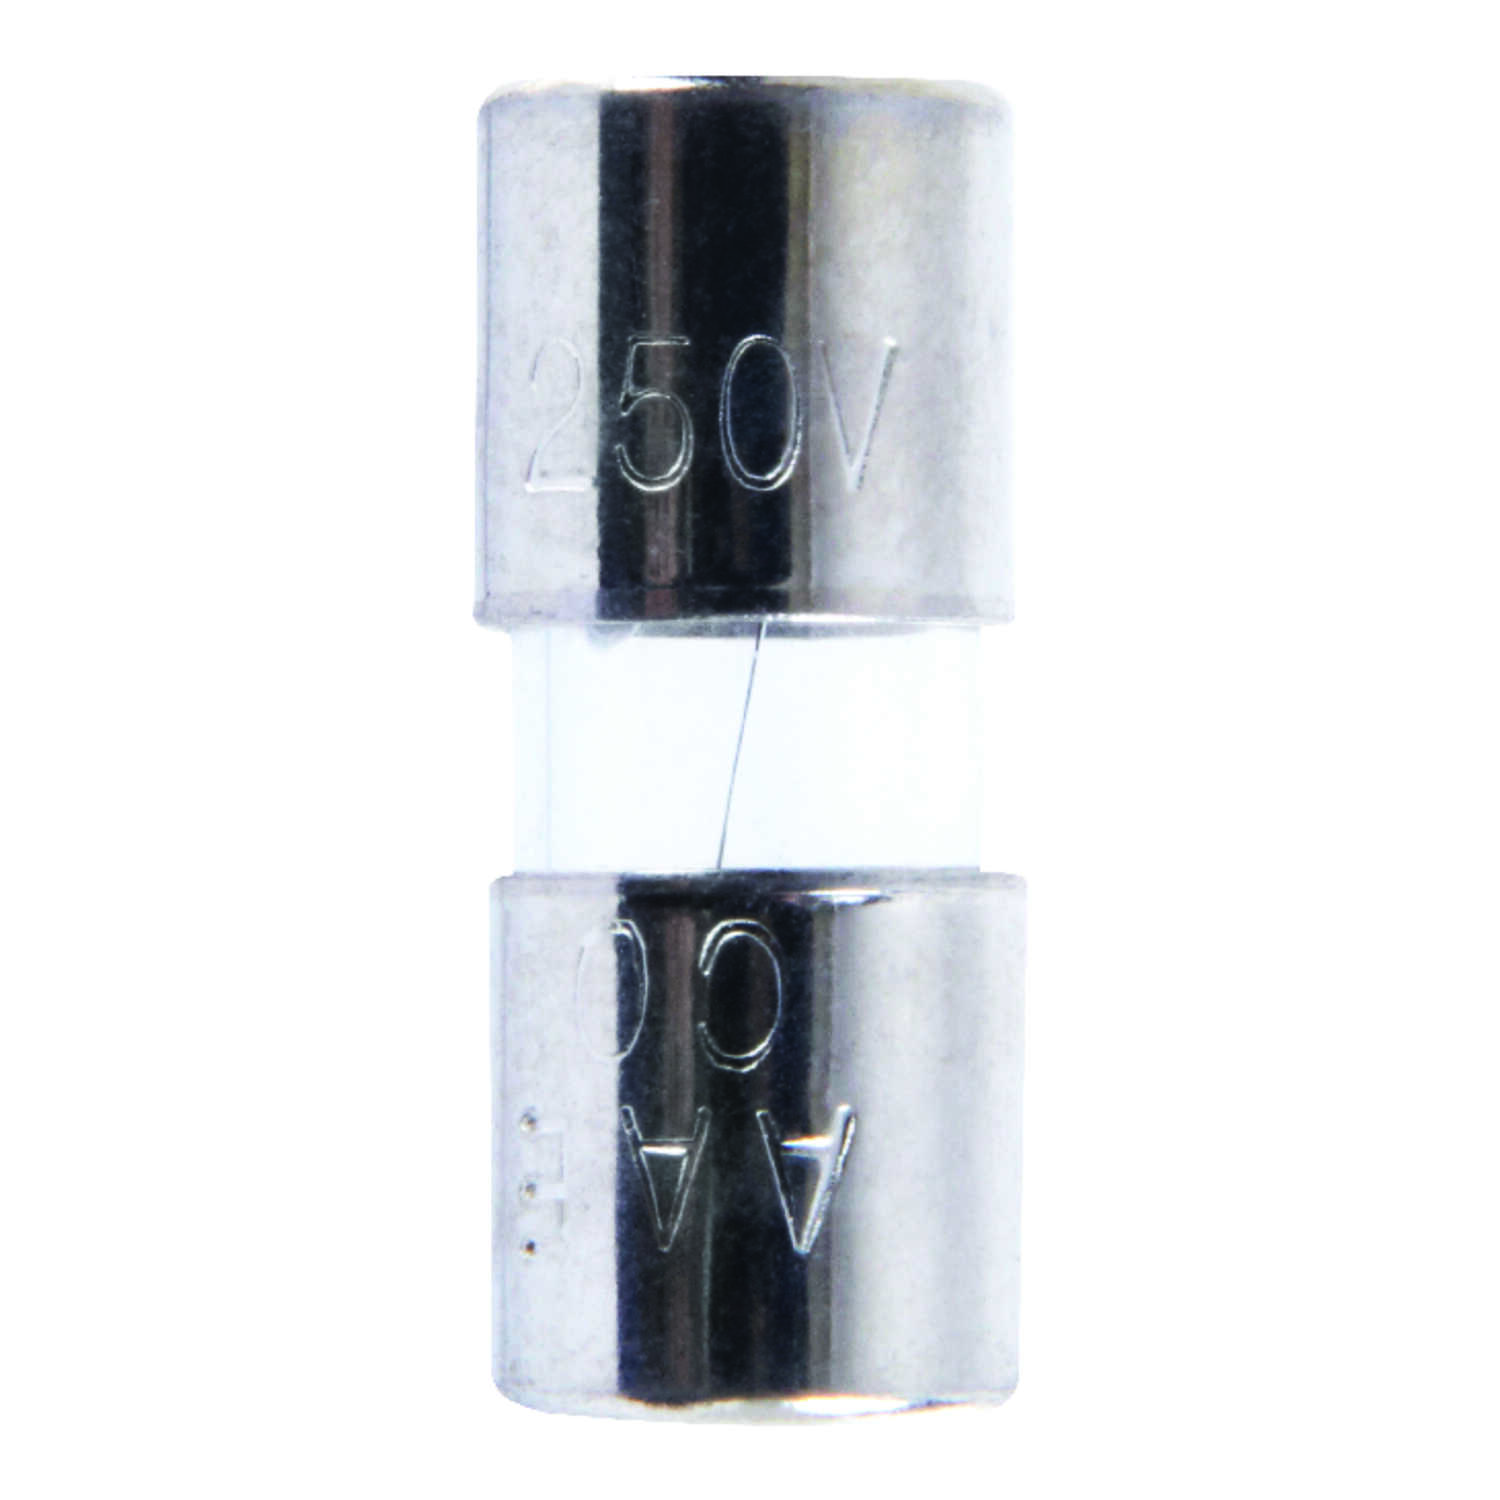 Jandorf  AGA  2 amps 250 volt Glass  Fast Acting Fuse  4 pk